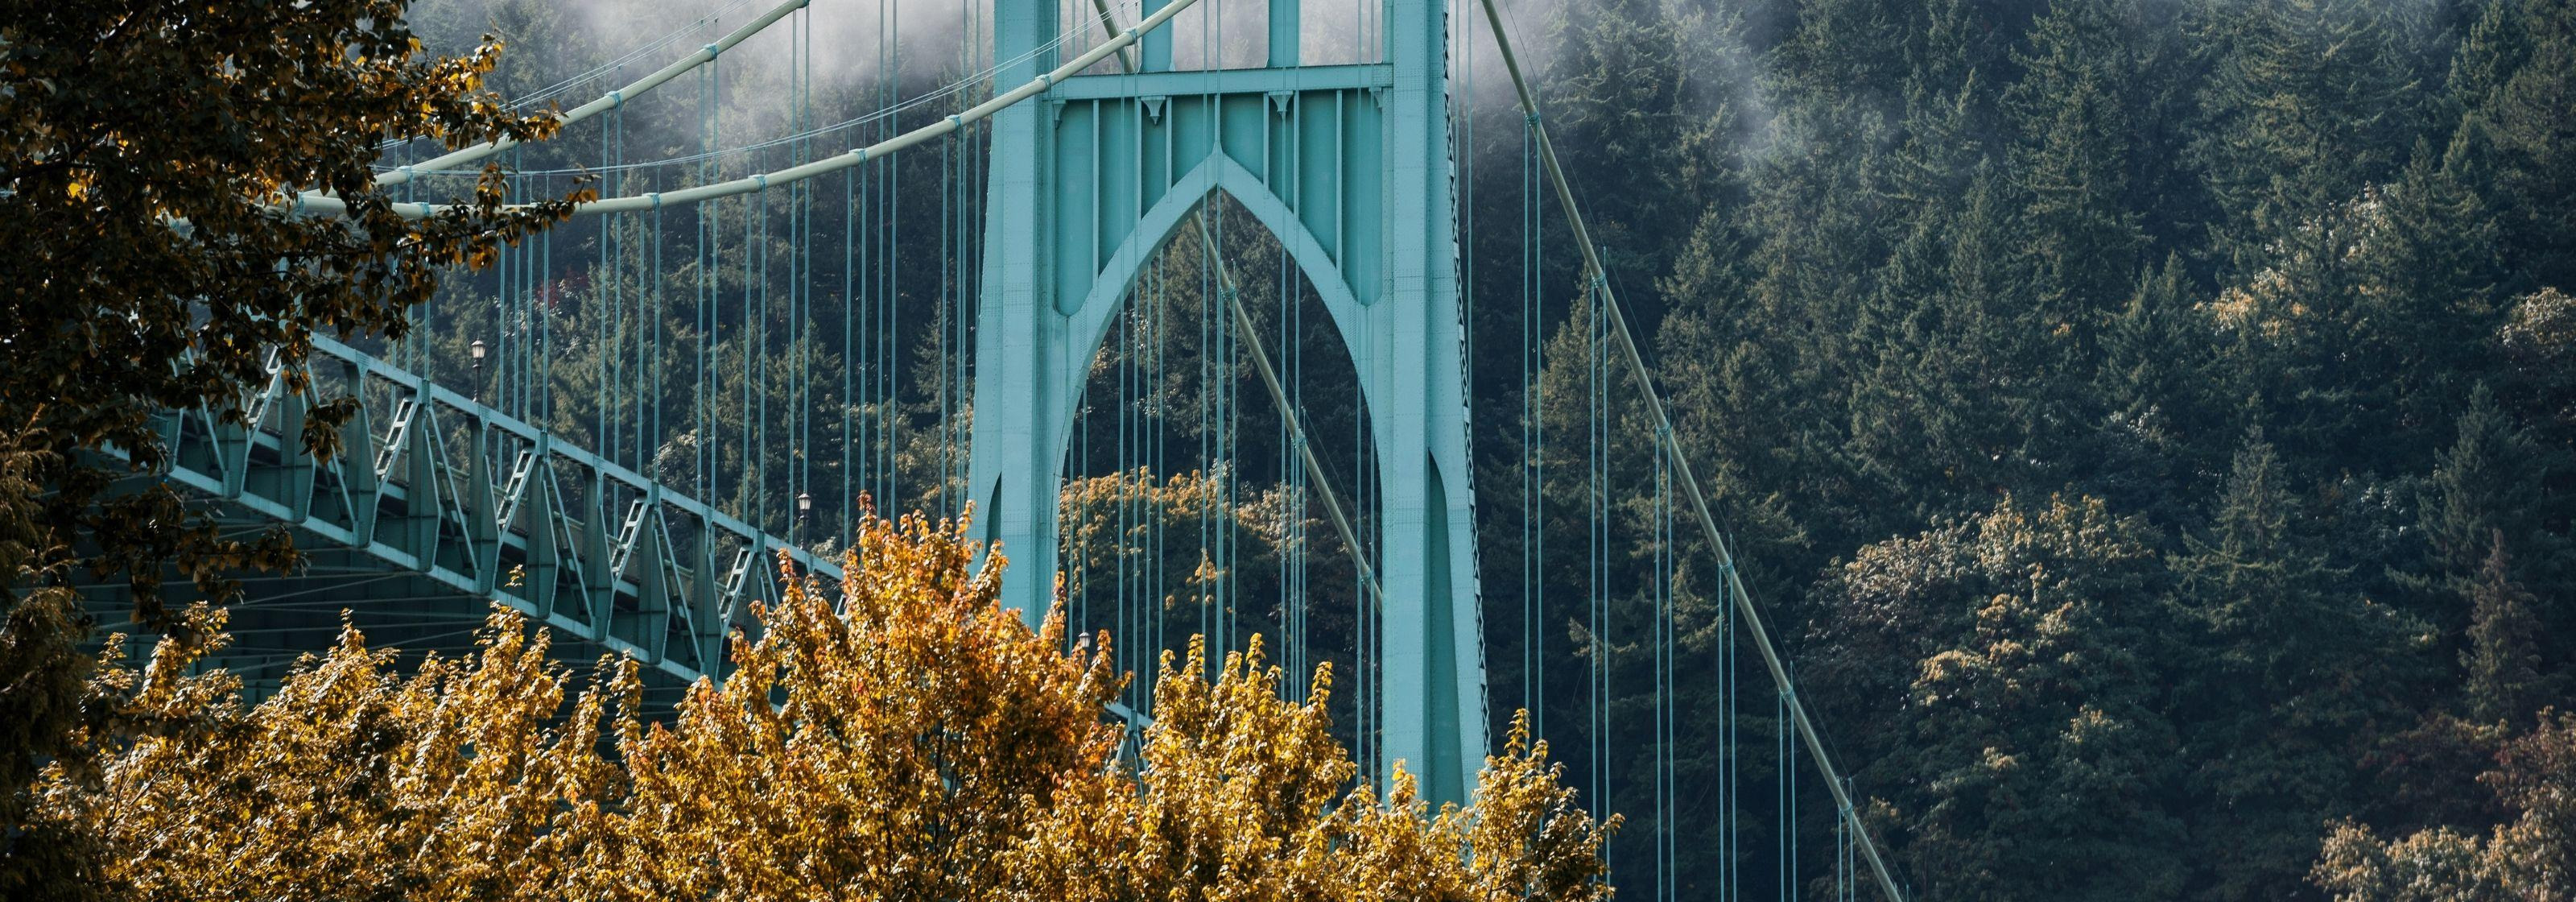 Things to do in Portland